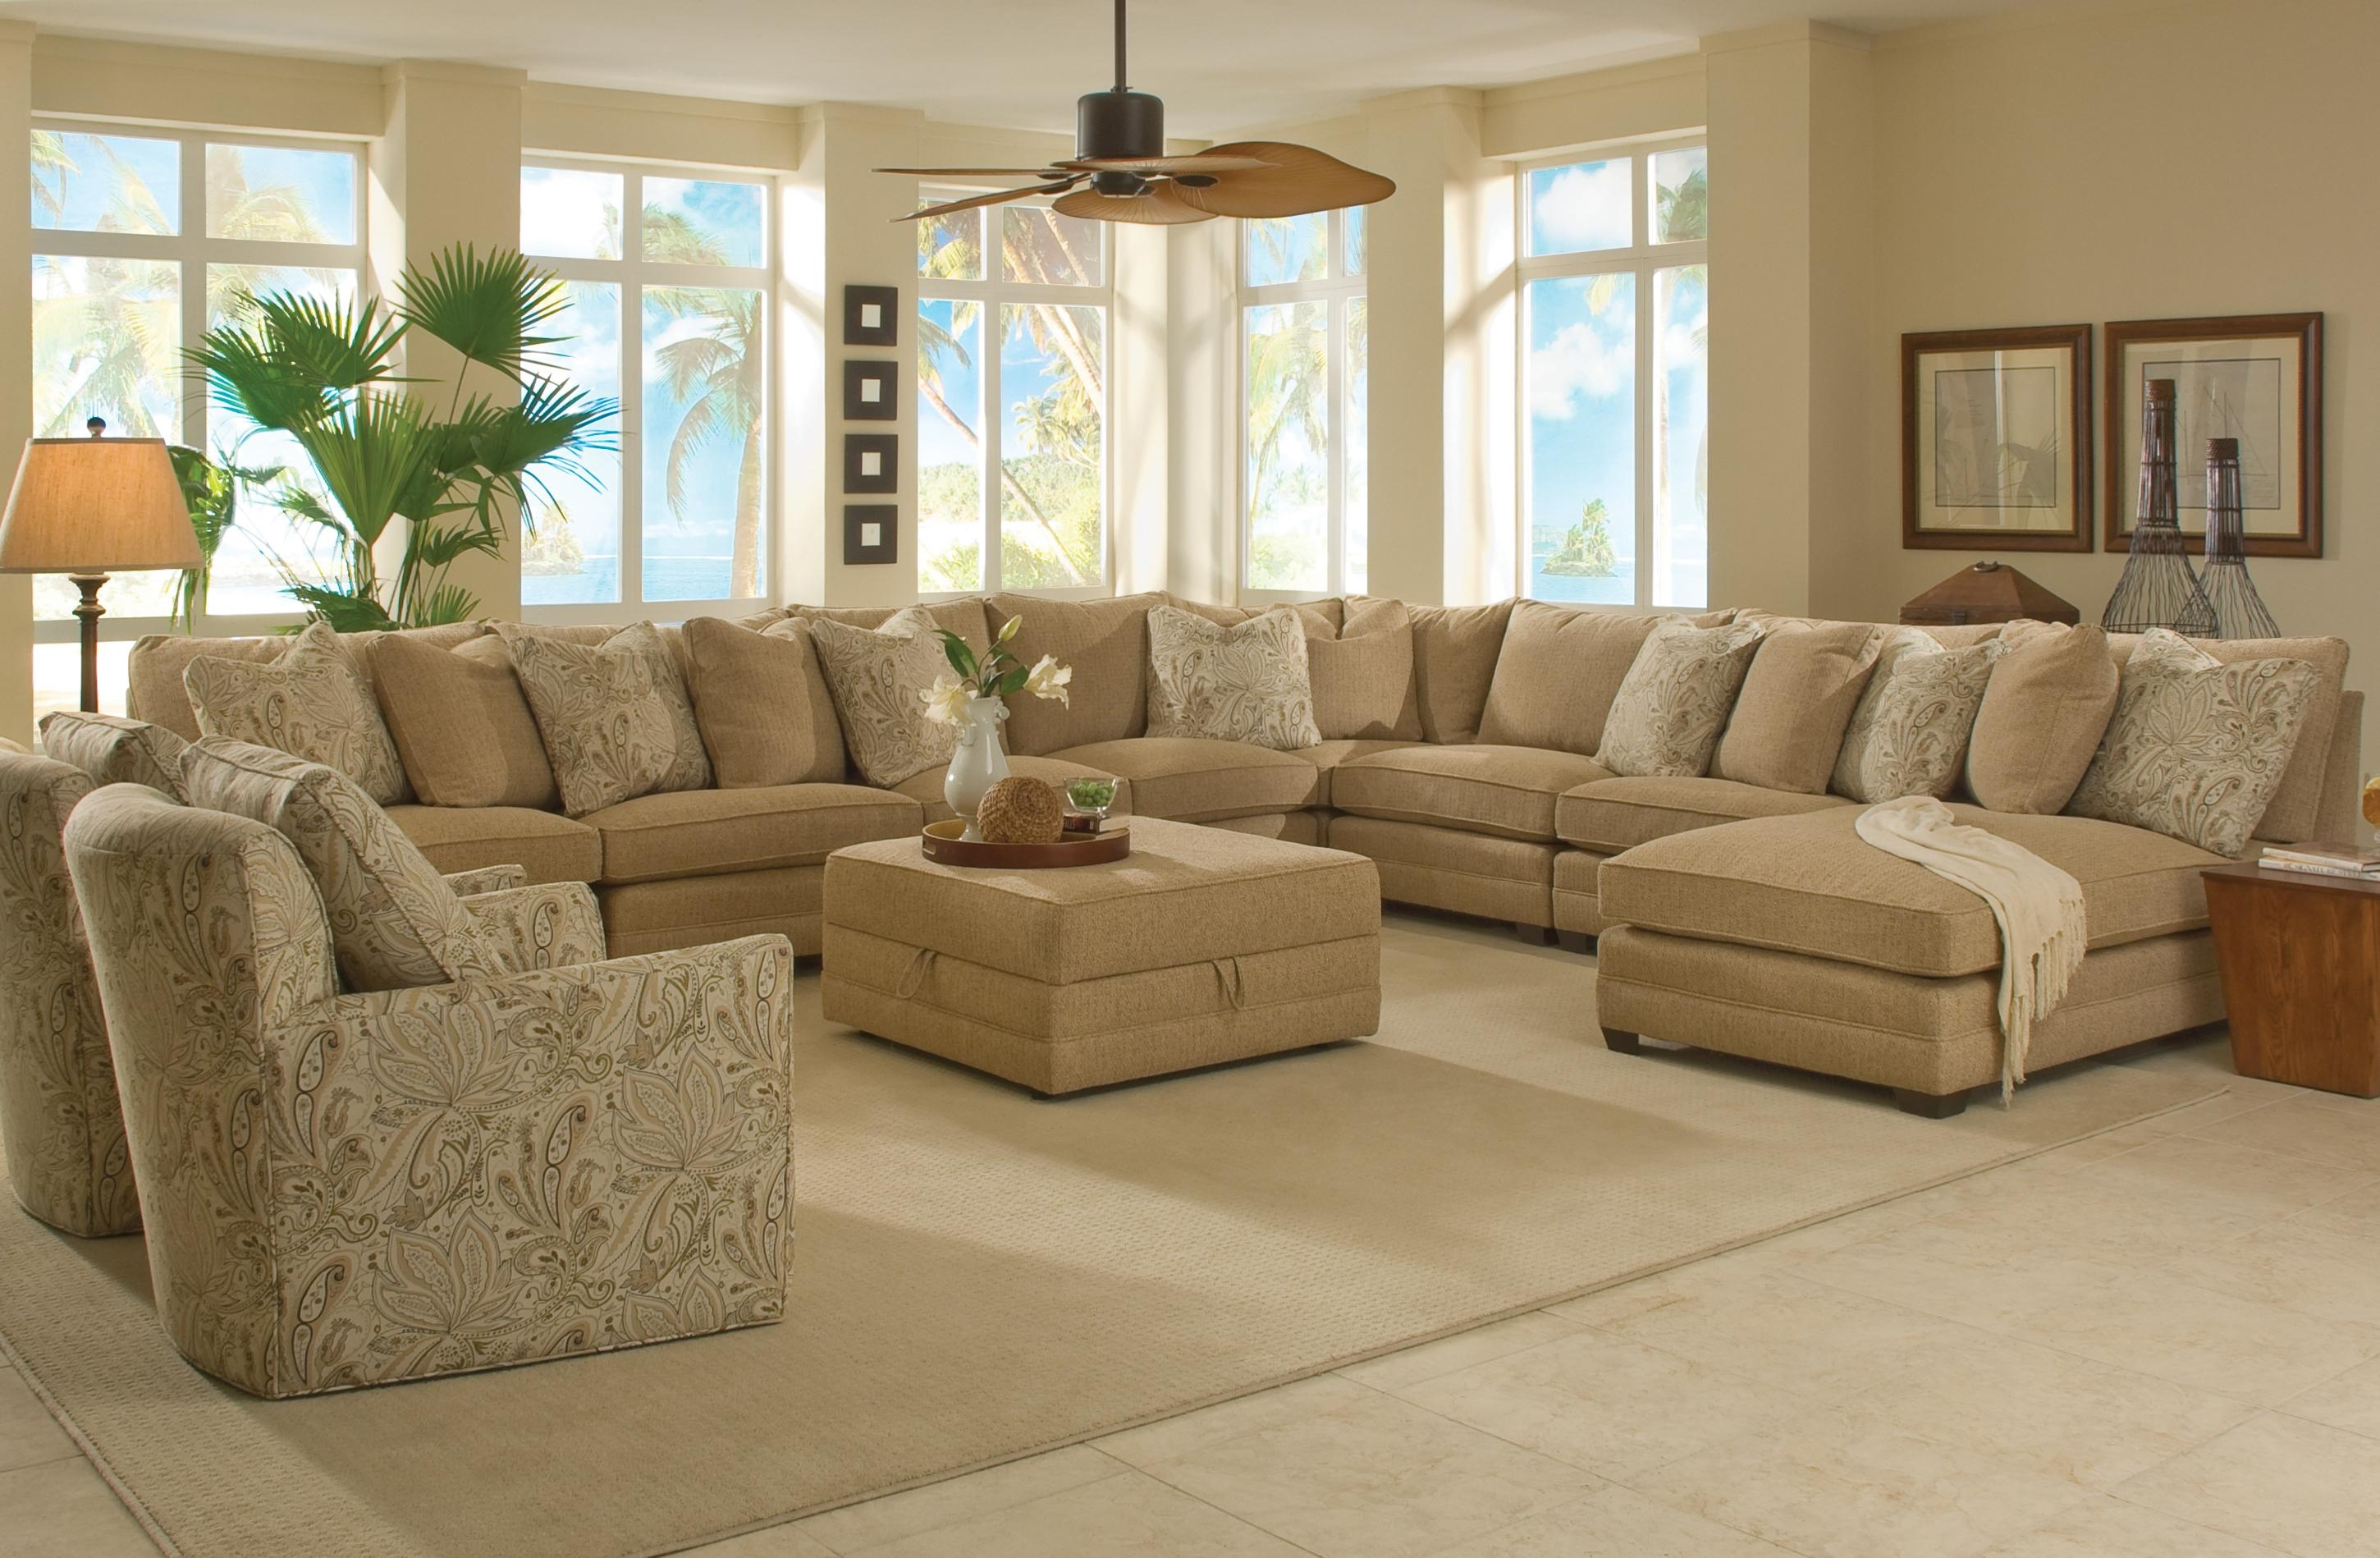 wide sofa sectionals factory outlet toronto extra sectional beds design best